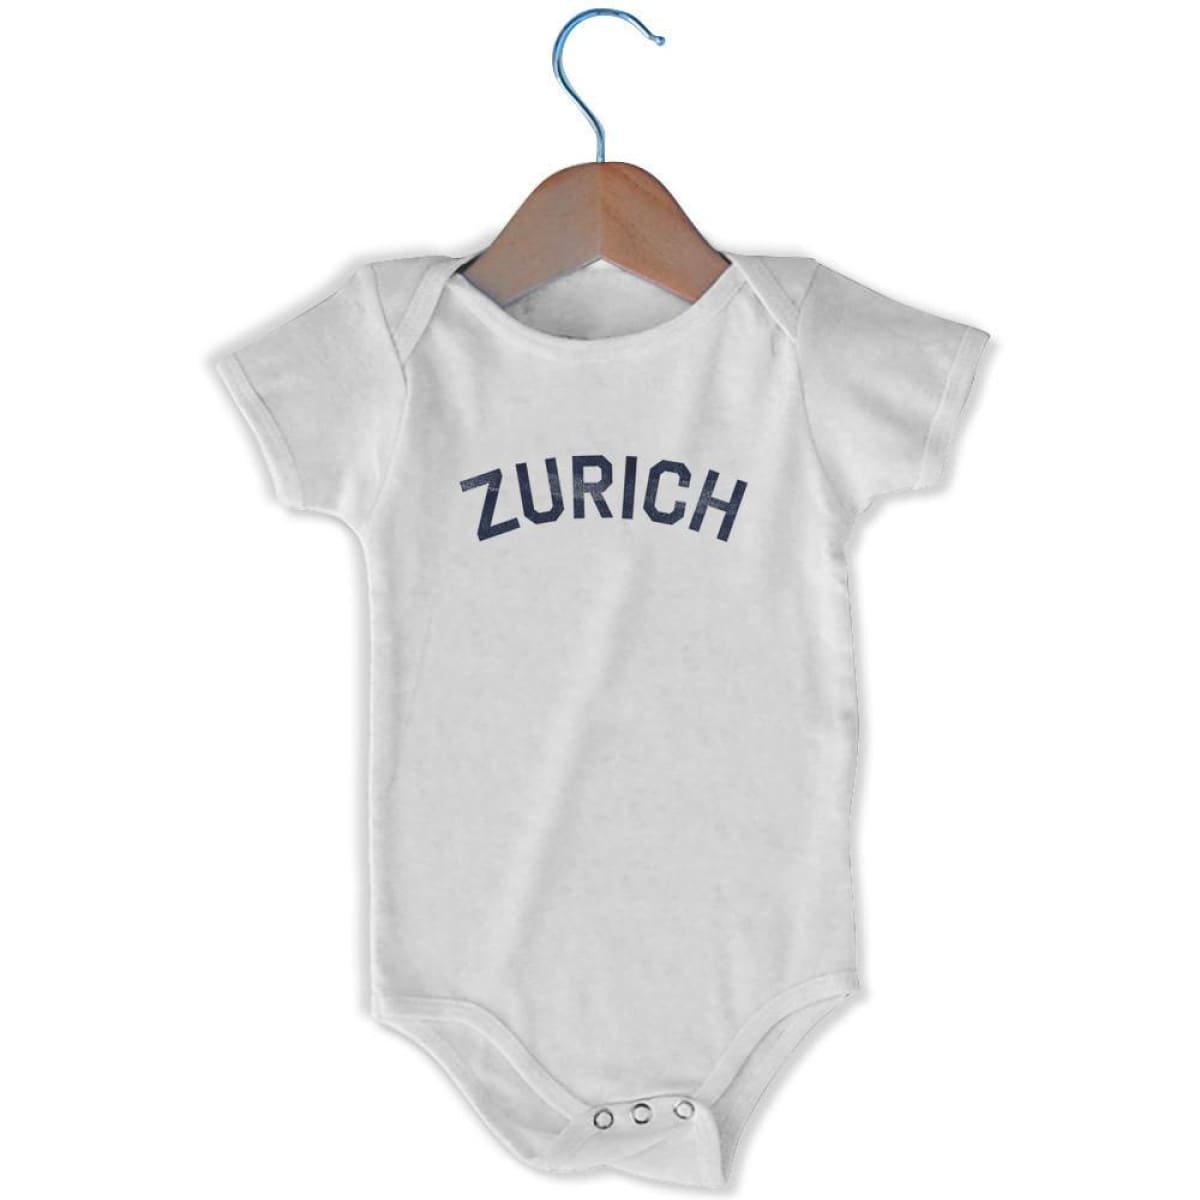 Zurich City Infant Onesie - White / 6 - 9 Months - Mile End City